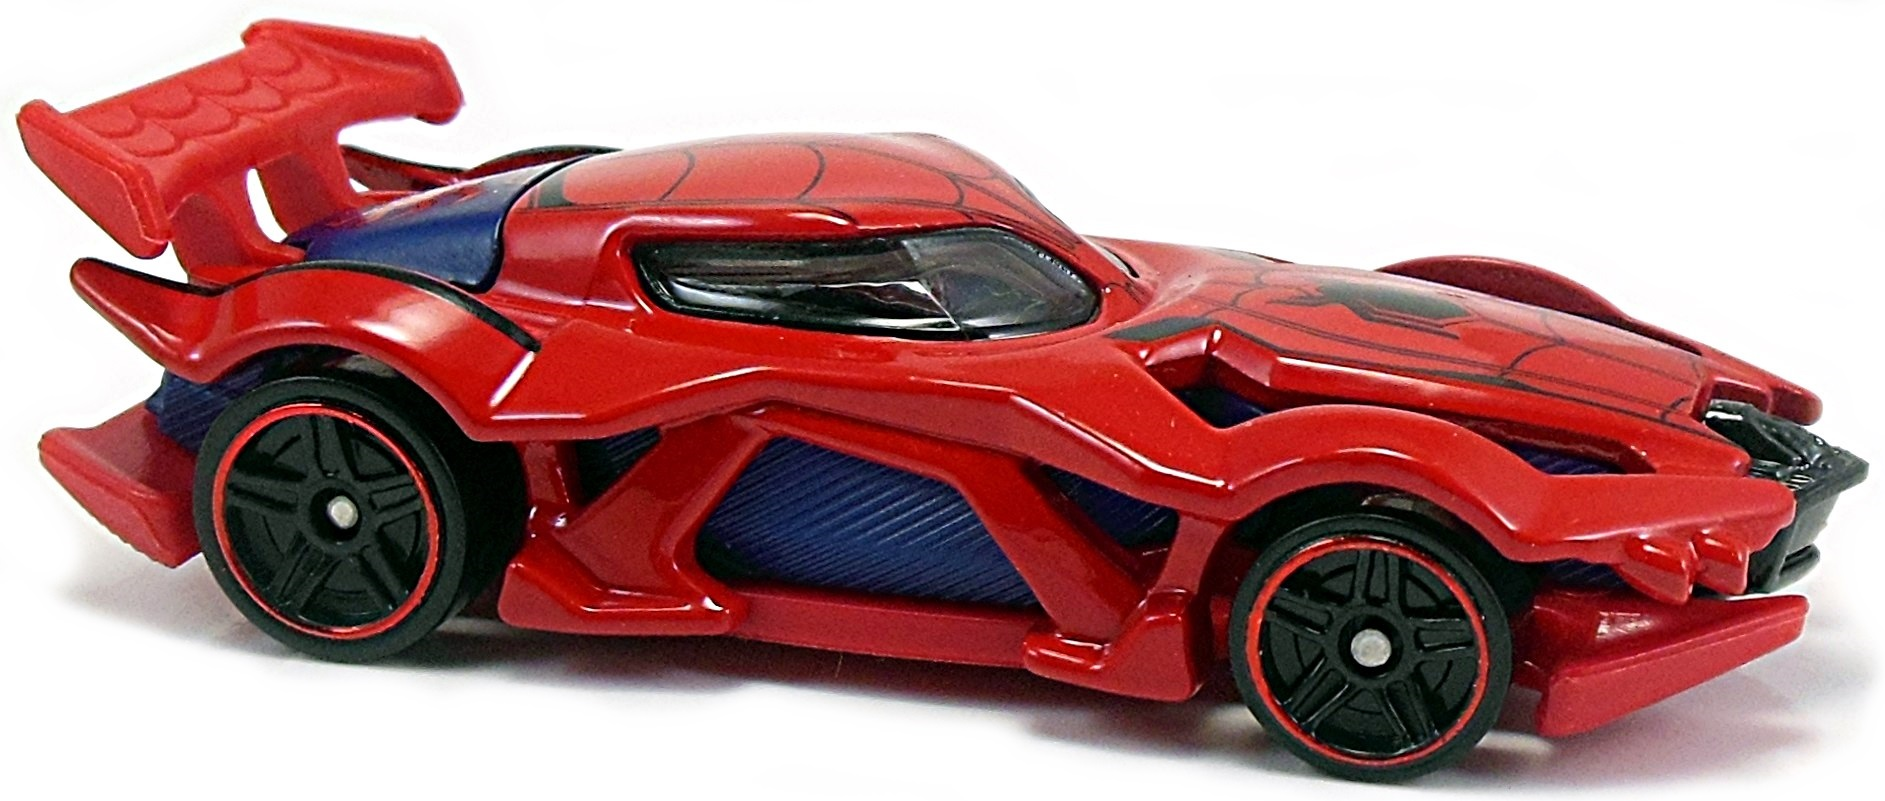 spider cars marvel character wiki wheels hotwheels rim rear sides wing base